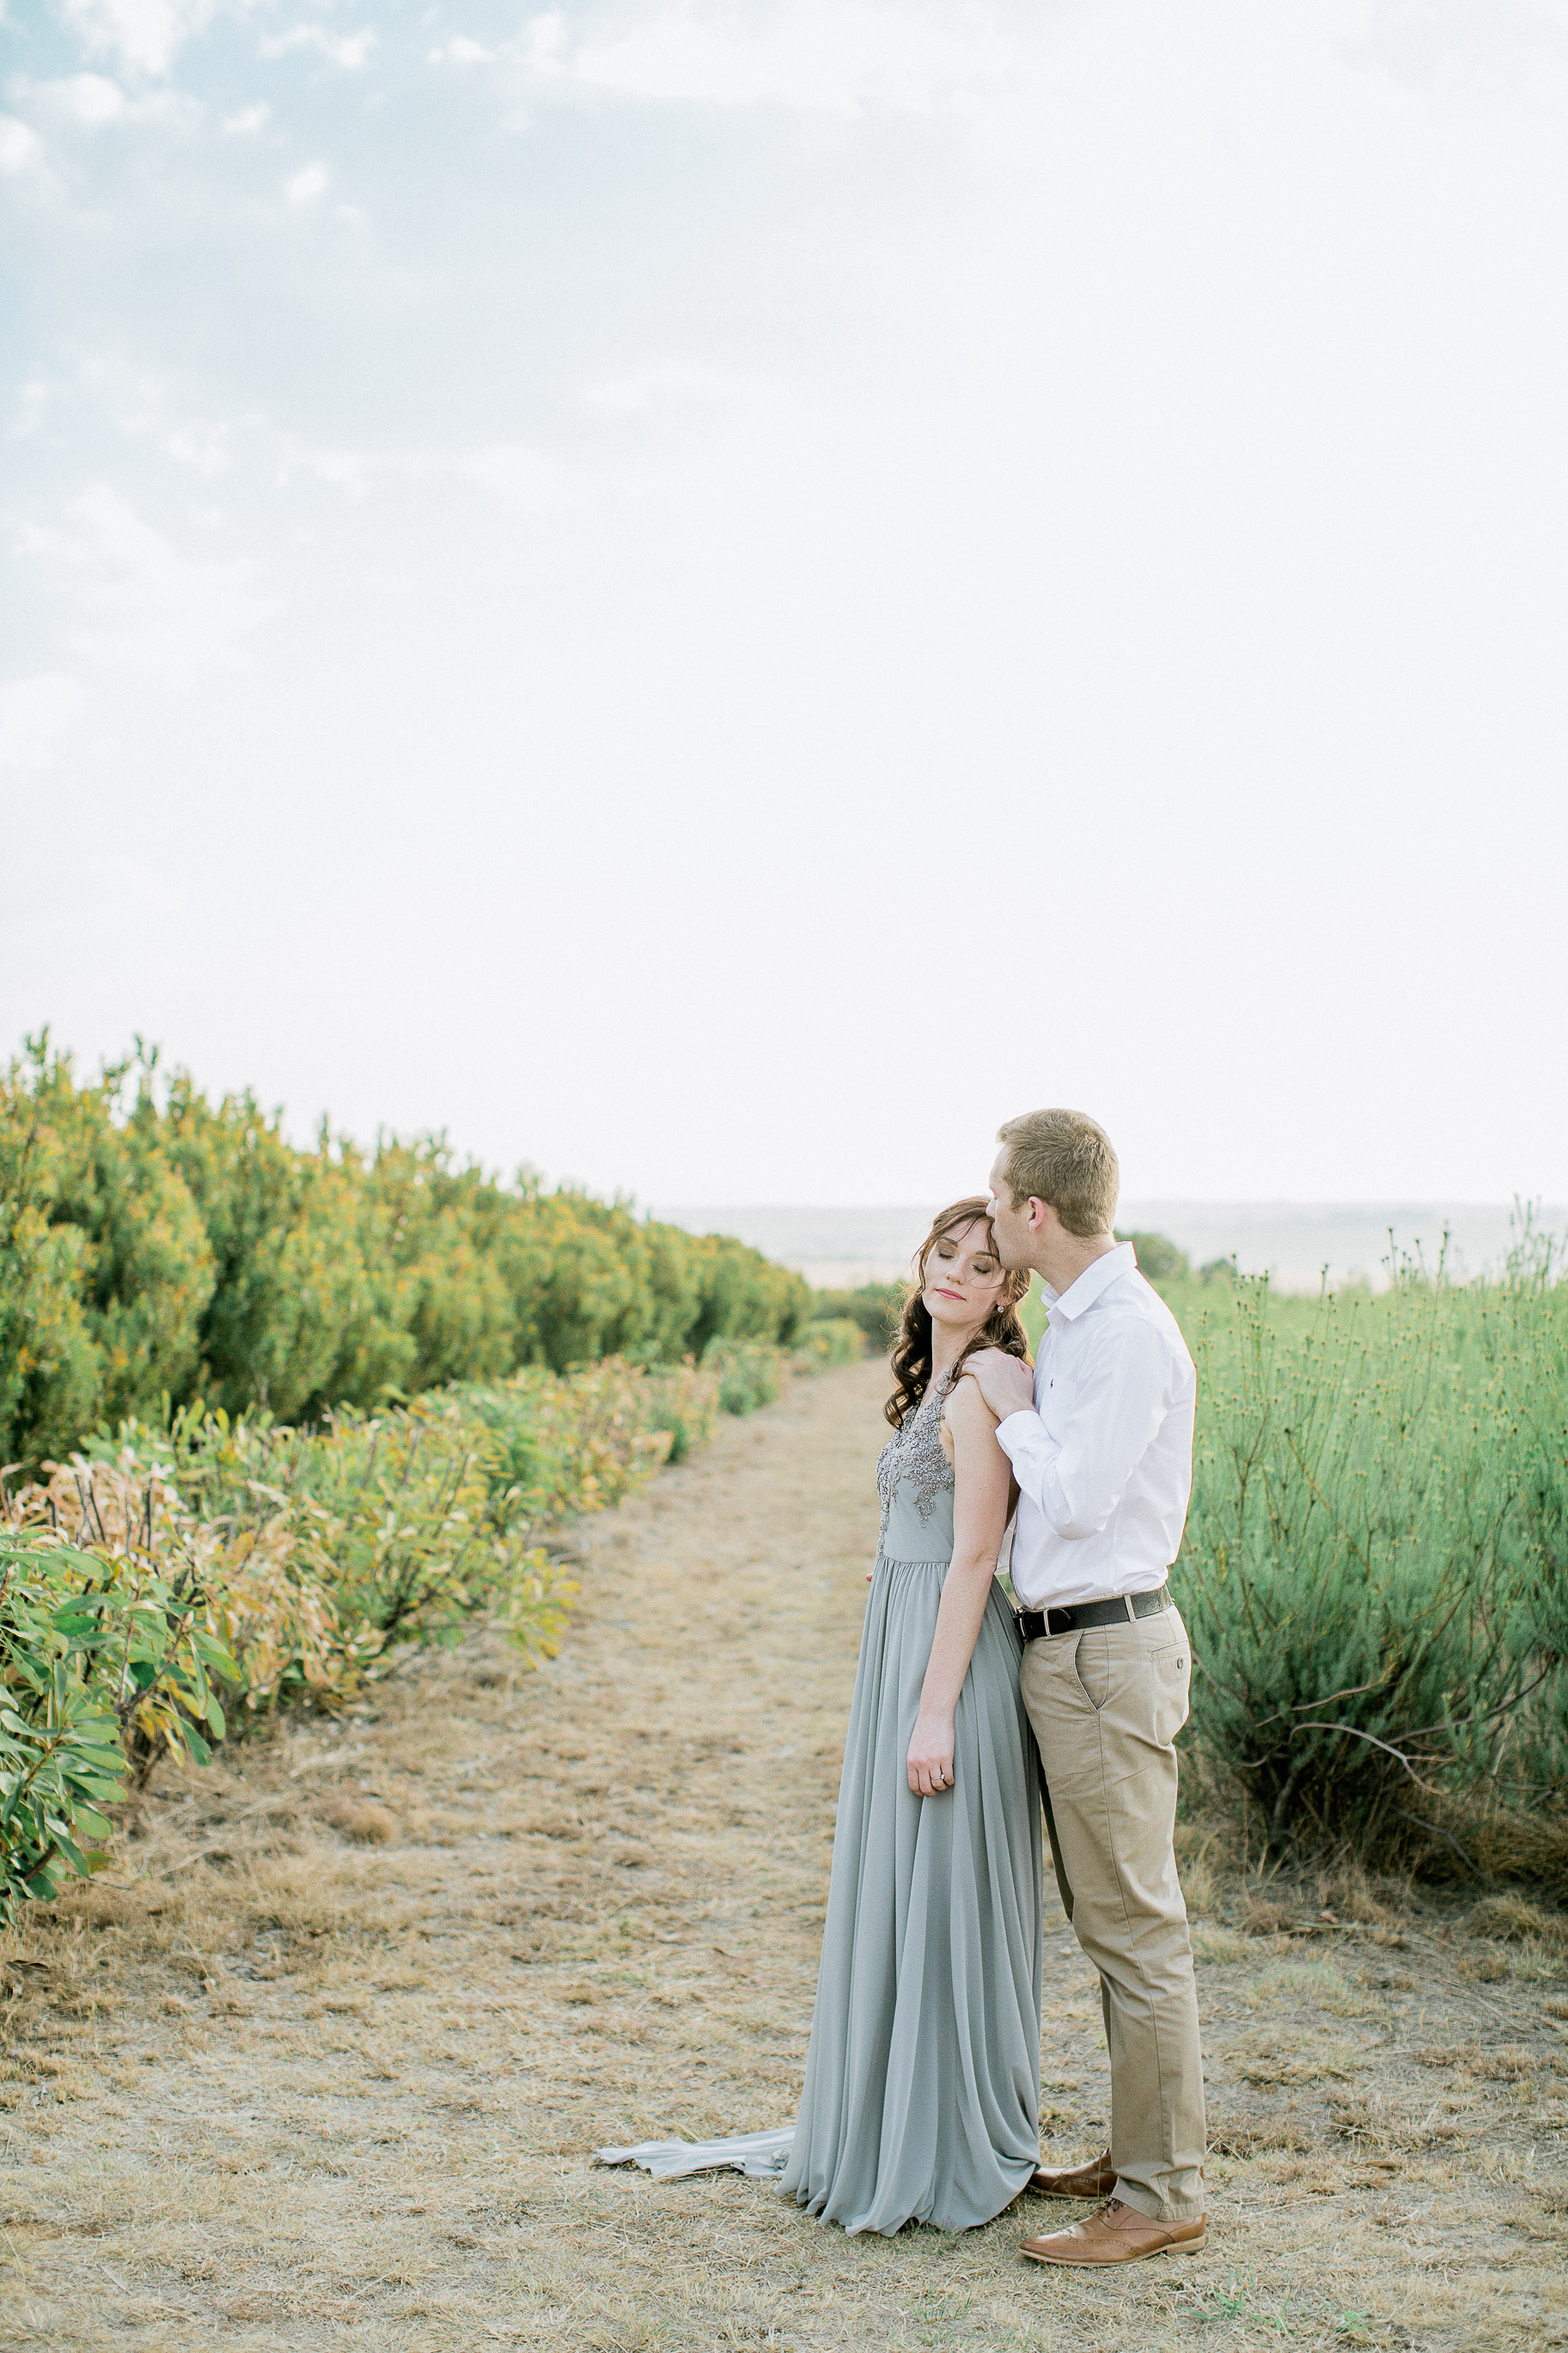 South africa wedding photographer clareece smit photography58.jpg